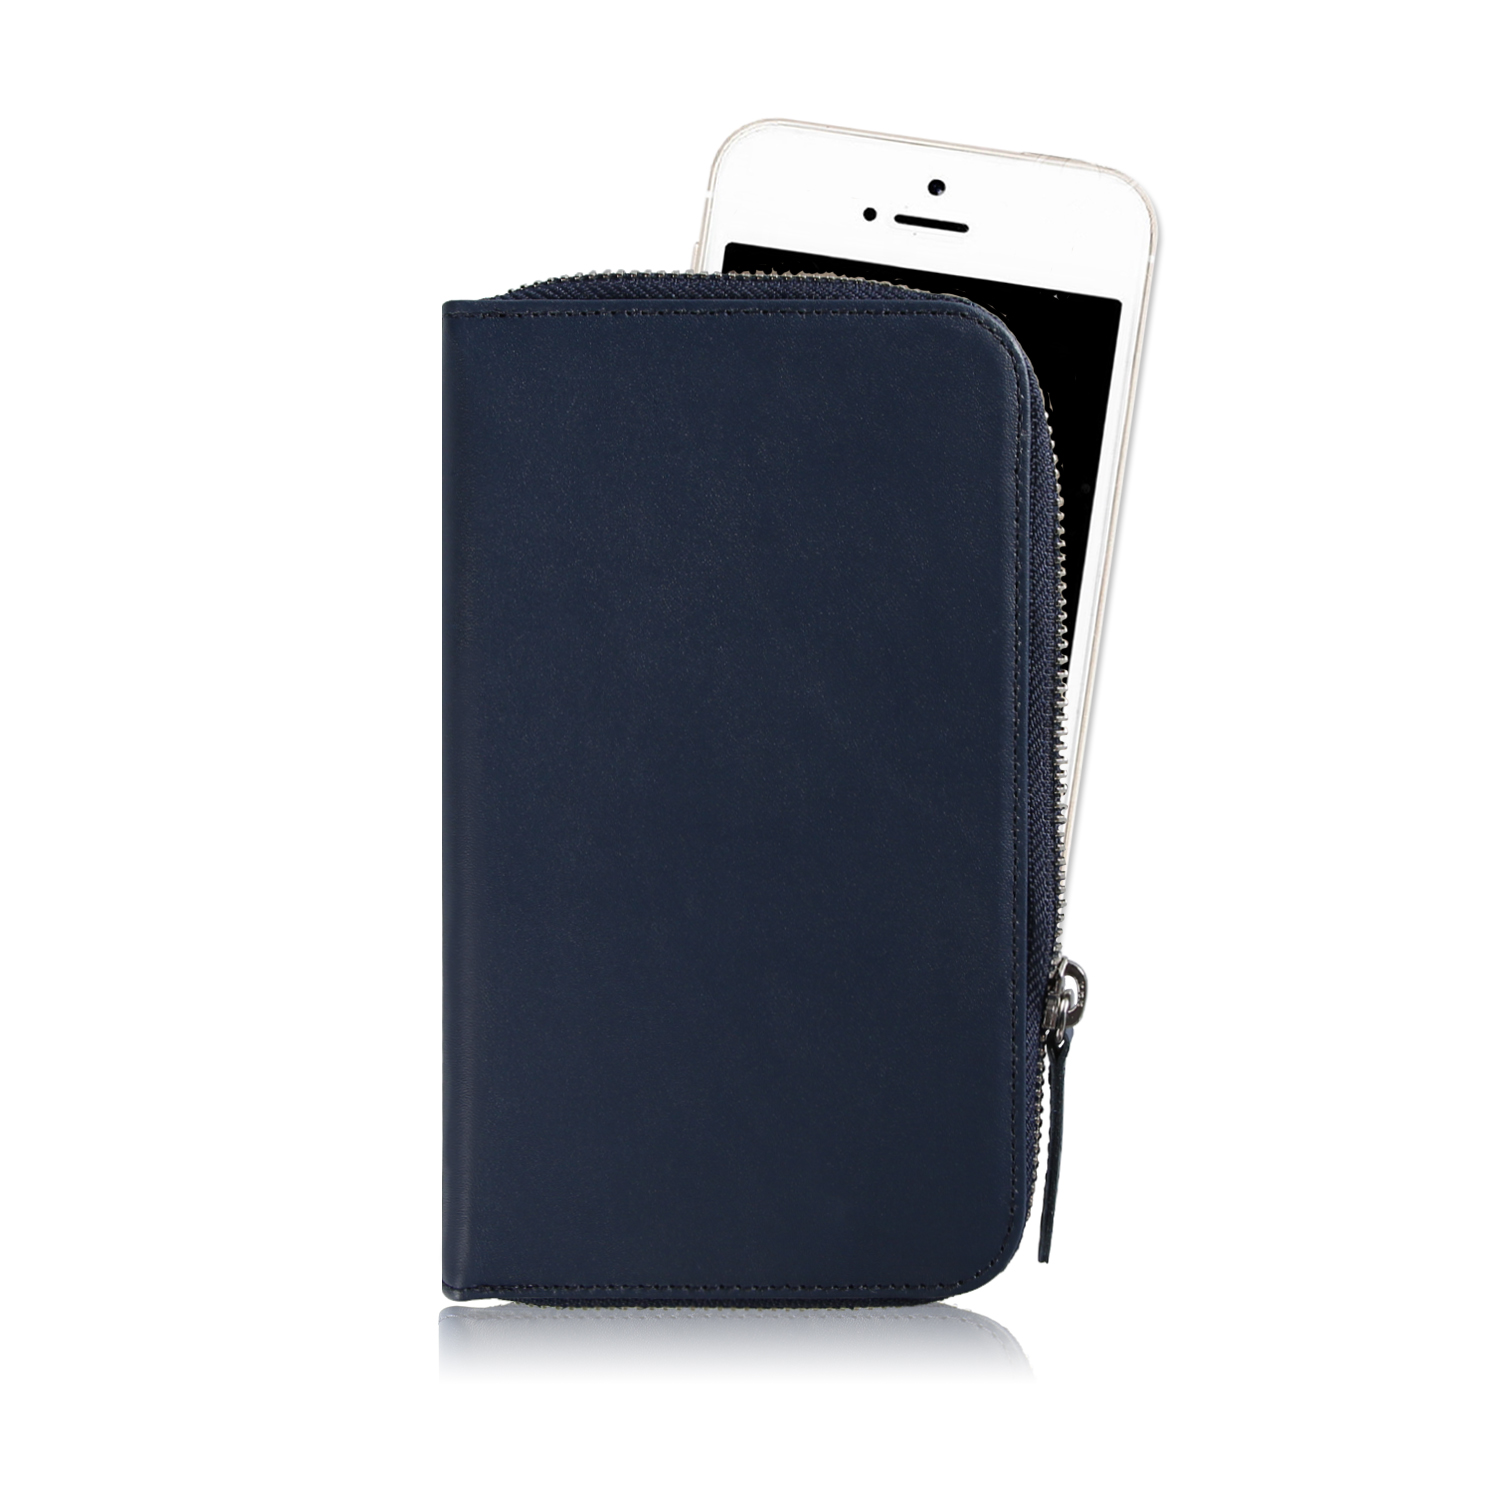 [6/26일 배송]Daily Phone Pocket +_Navy